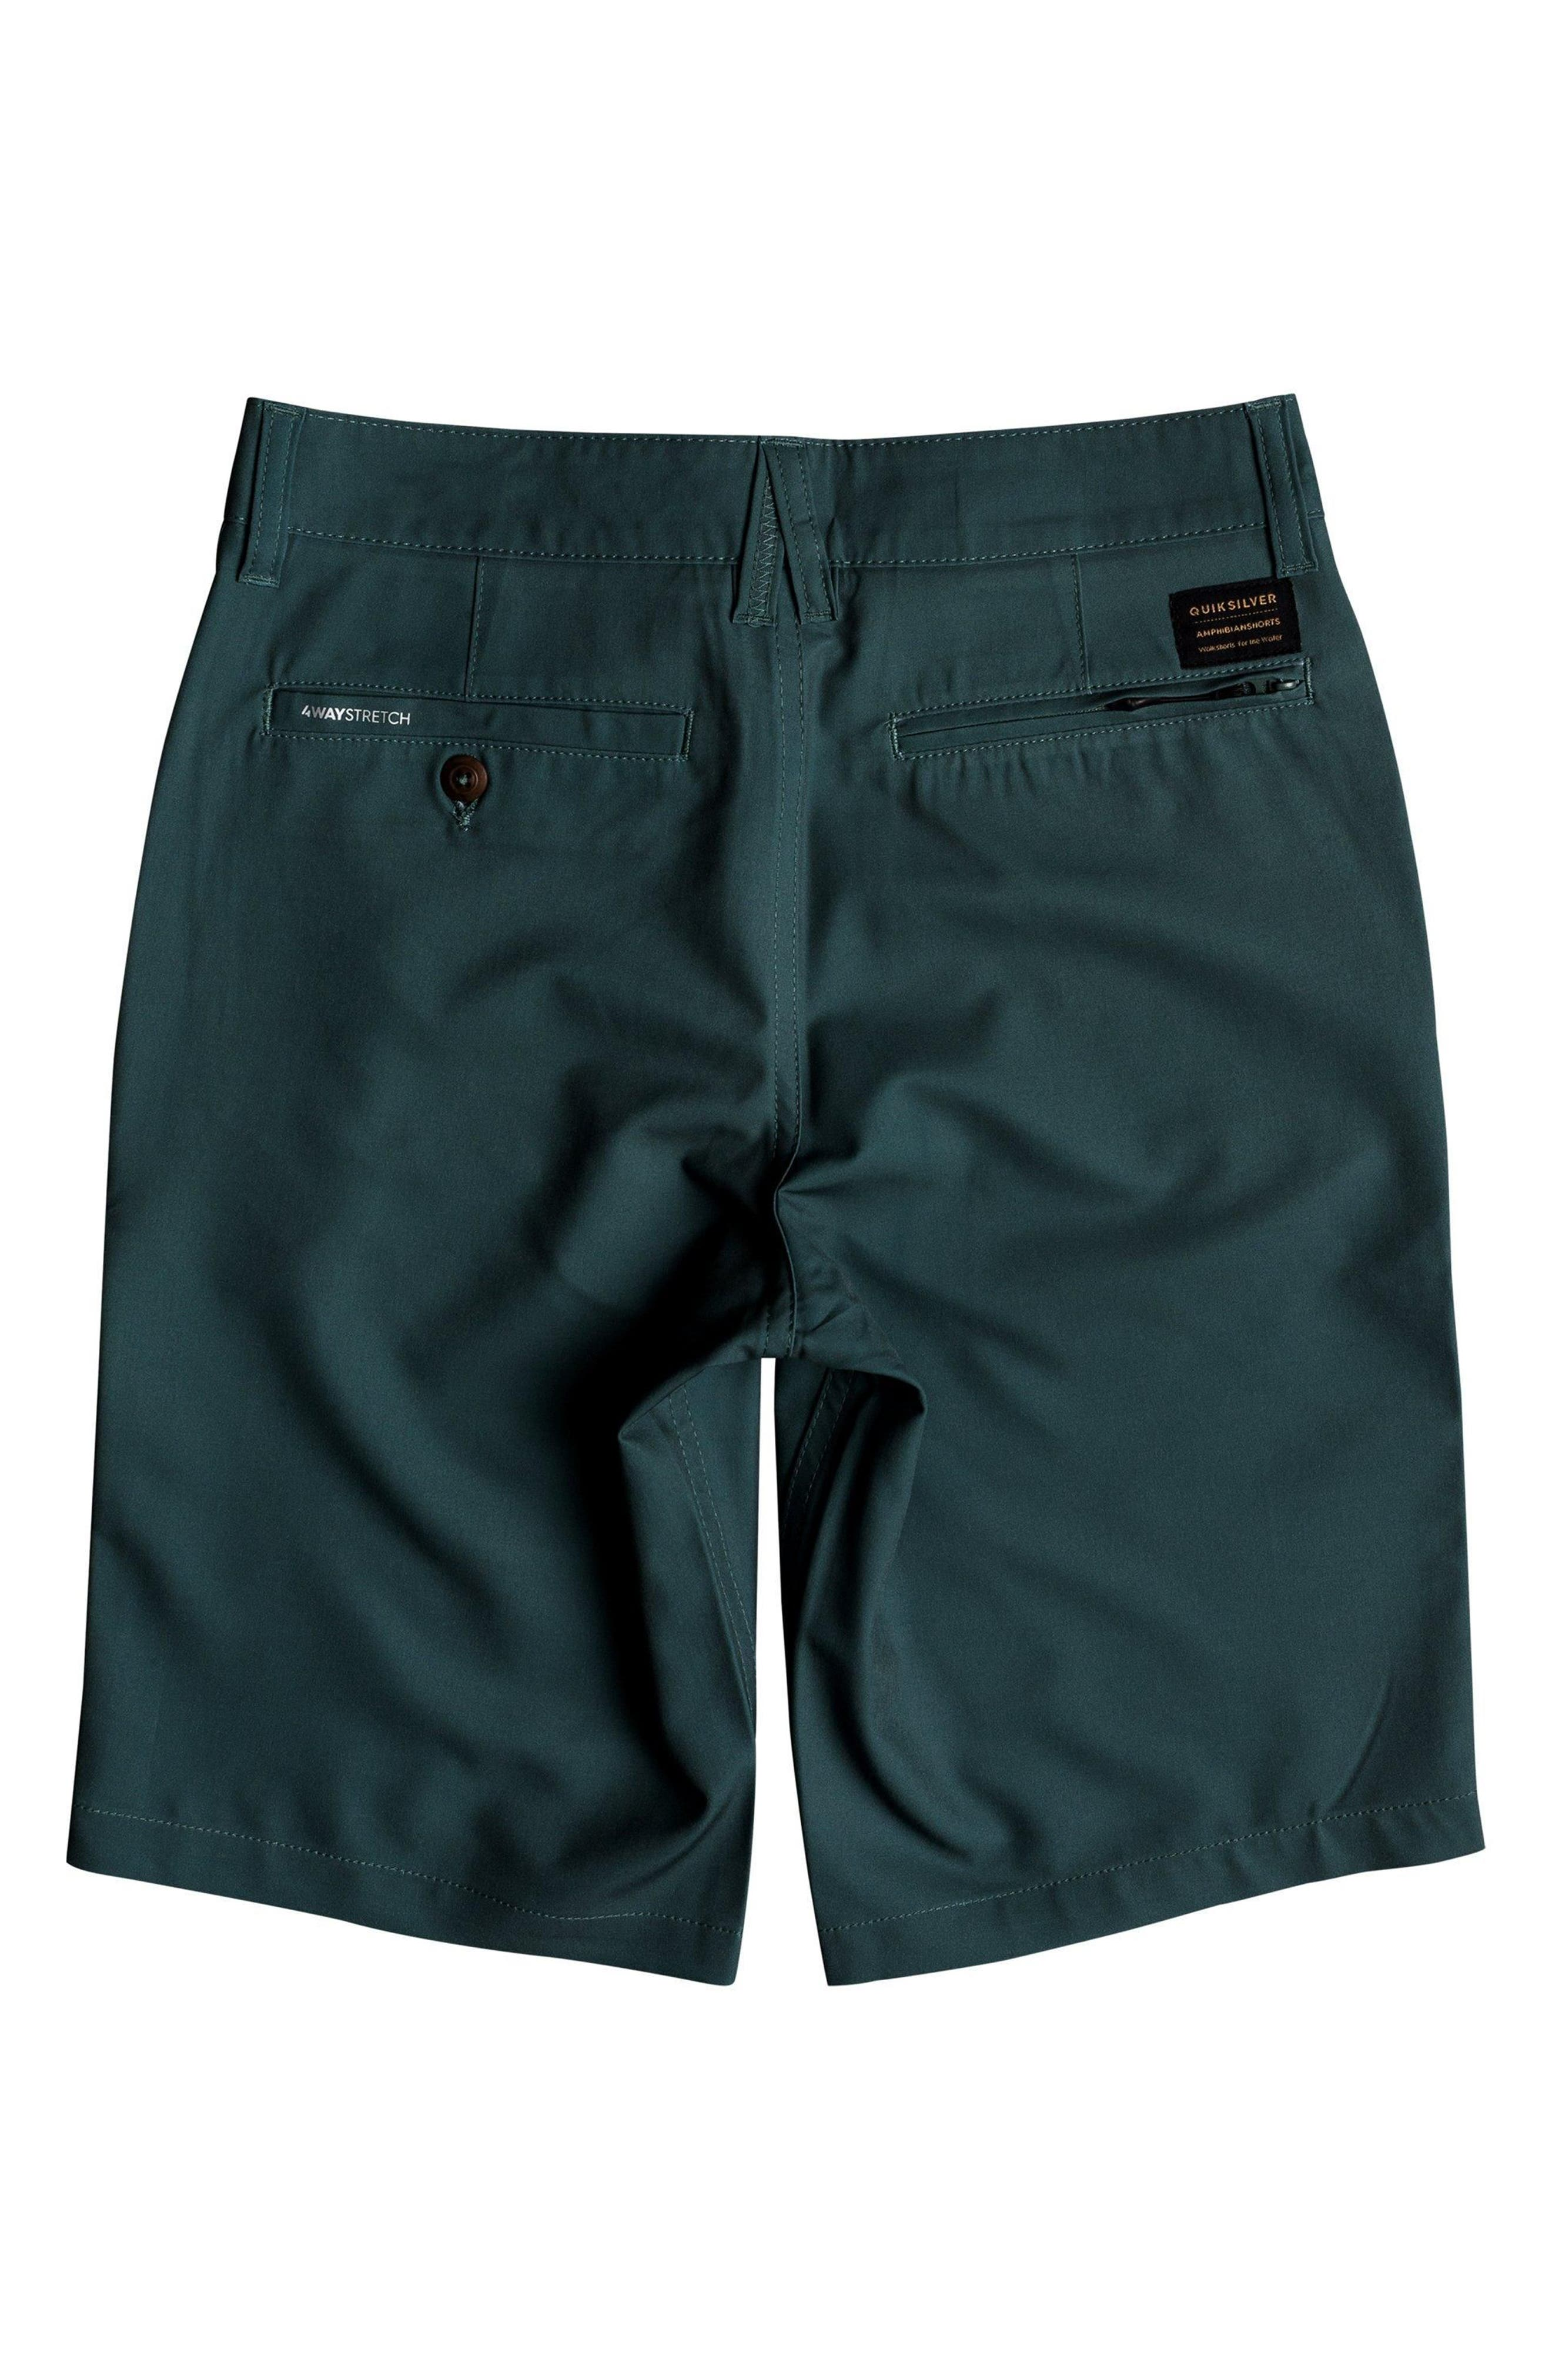 Union Amphibian Hybrid Shorts,                             Alternate thumbnail 4, color,